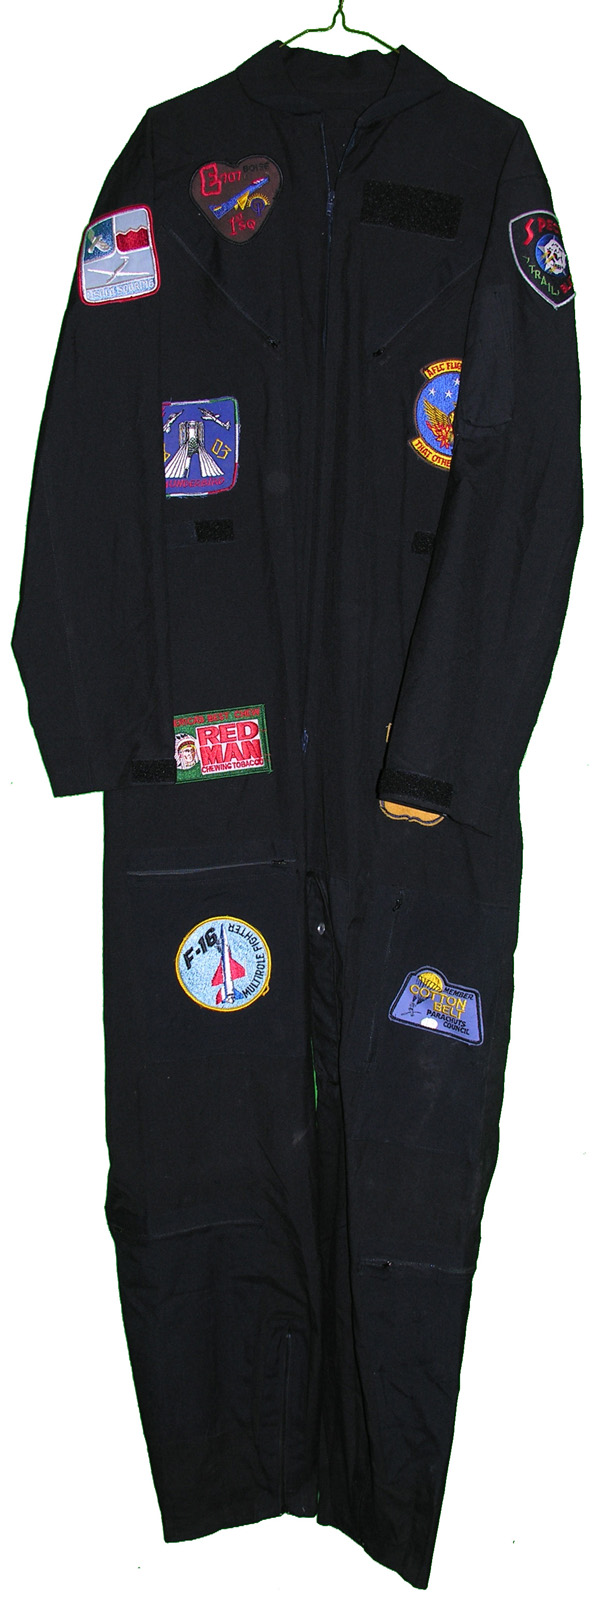 Party Flight Suit with patches